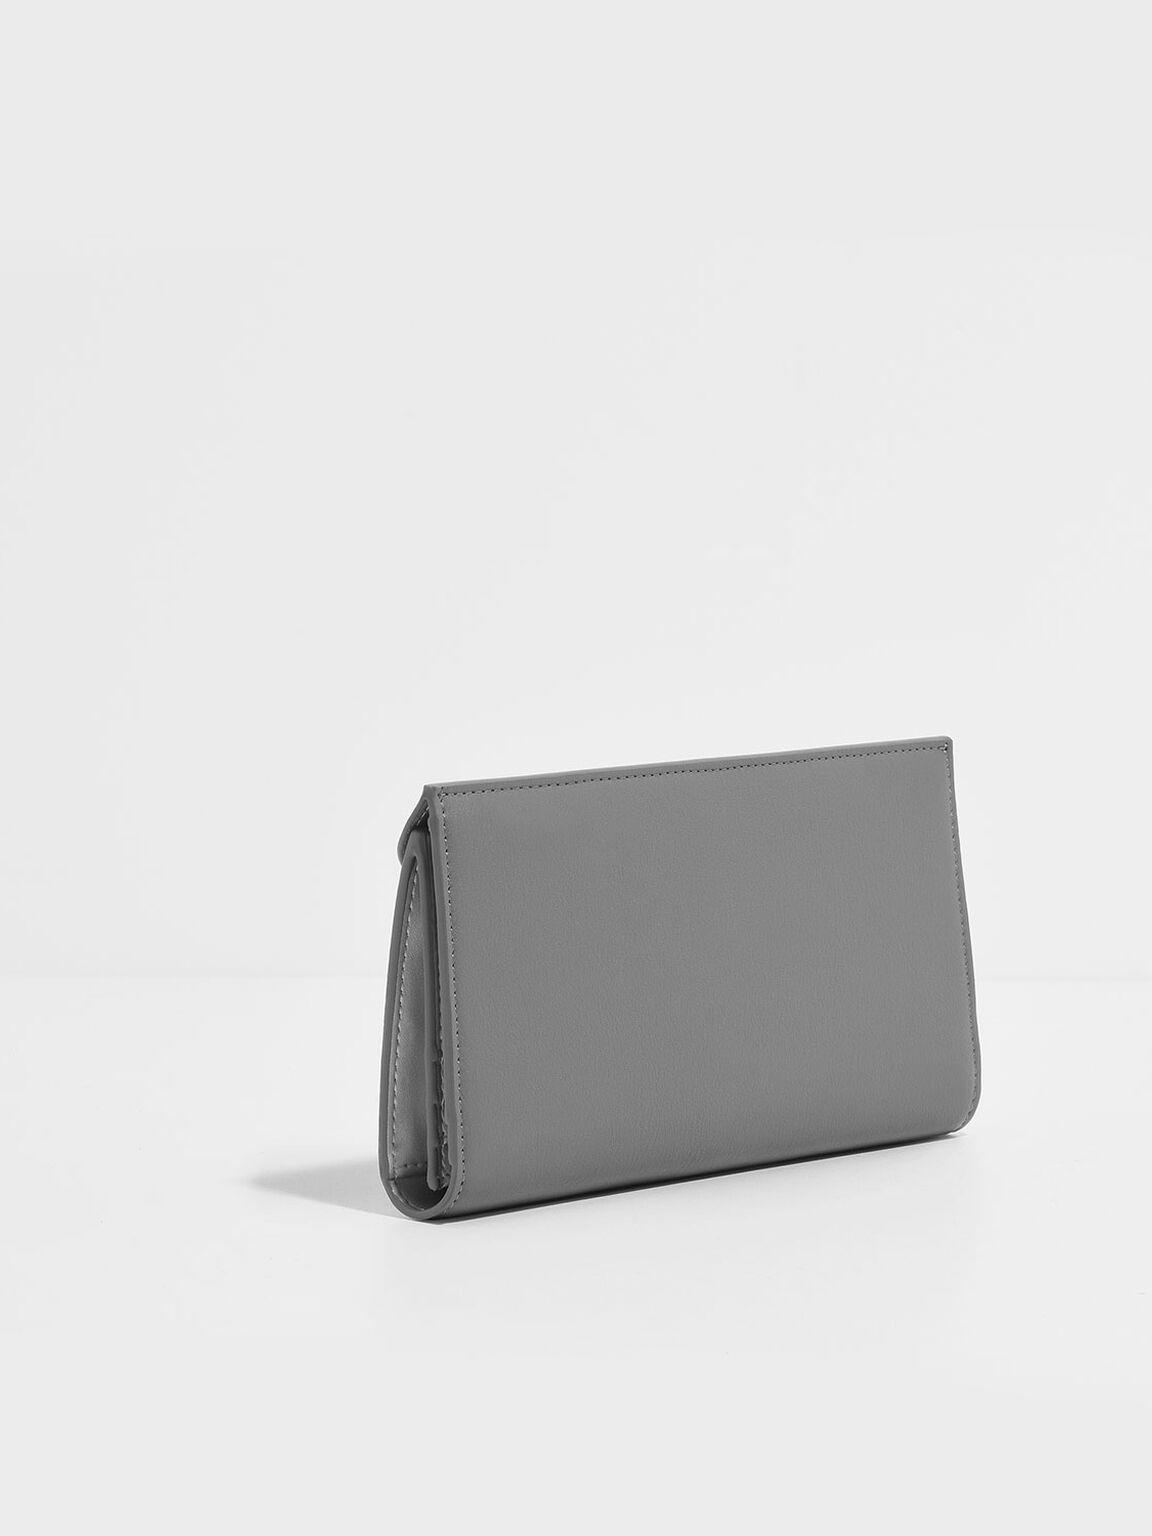 Mini Envelope Wallet, Grey, hi-res